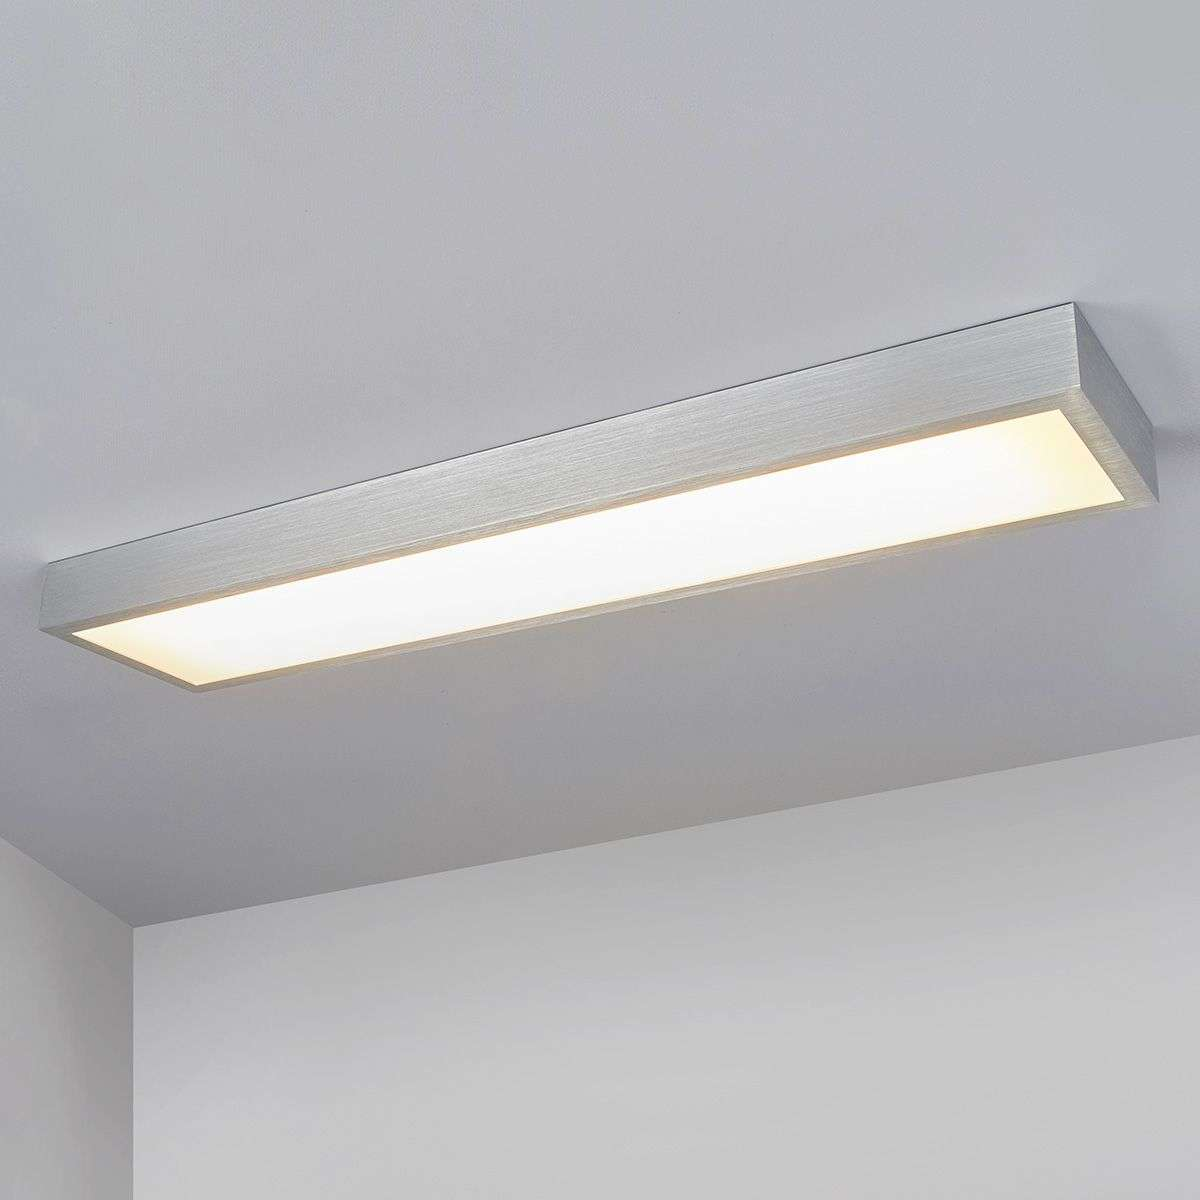 Esila led ceiling light lights